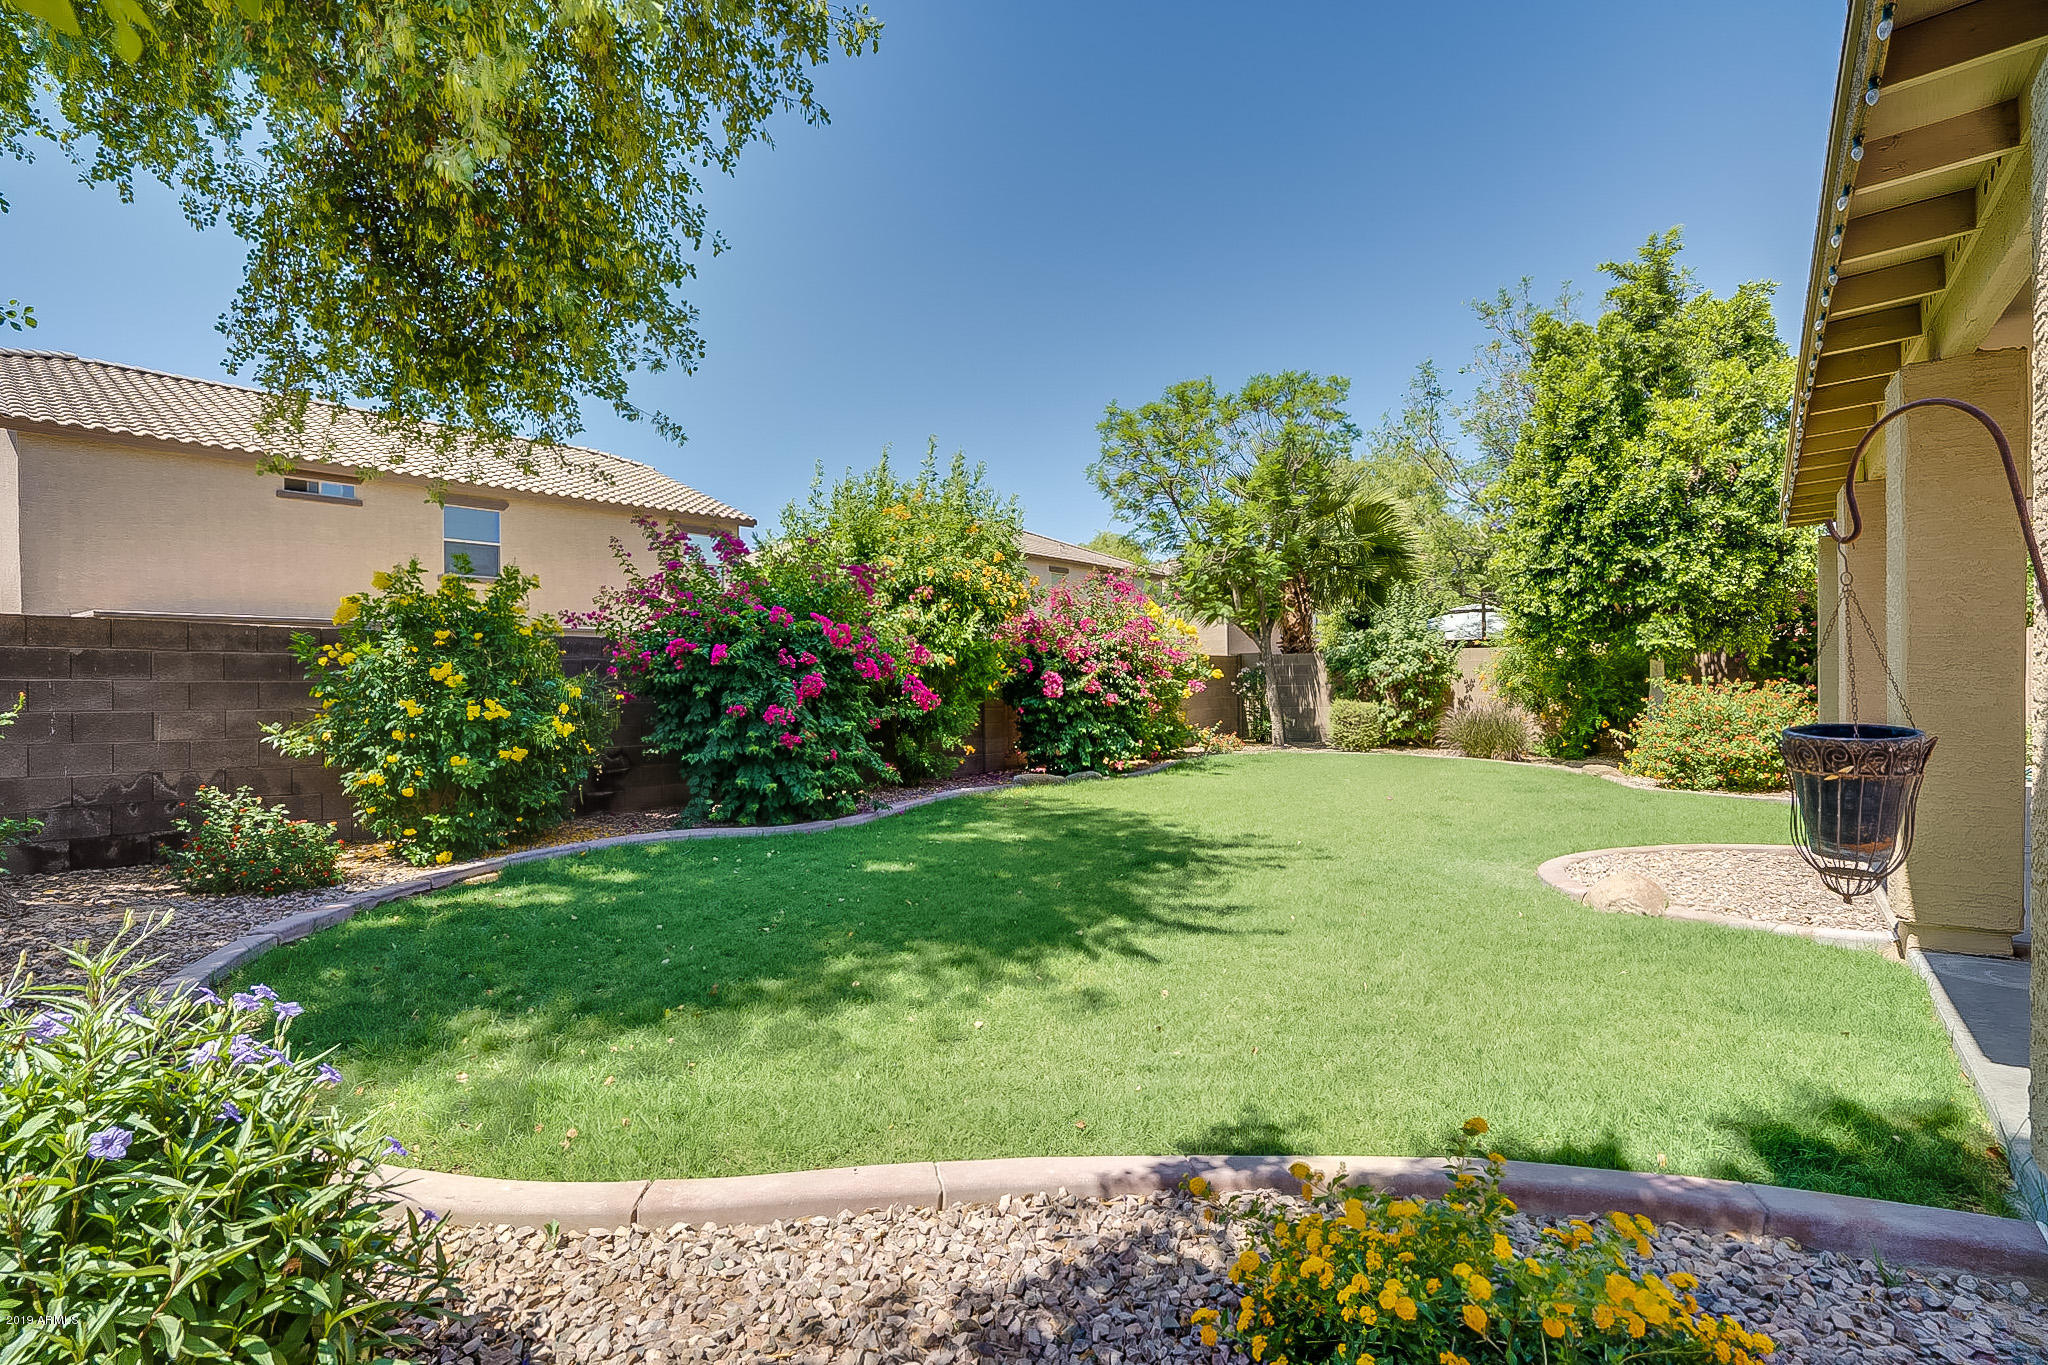 MLS 5938562 11867 W KINDERMAN Drive, Avondale, AZ 85323 Avondale AZ Mountain View